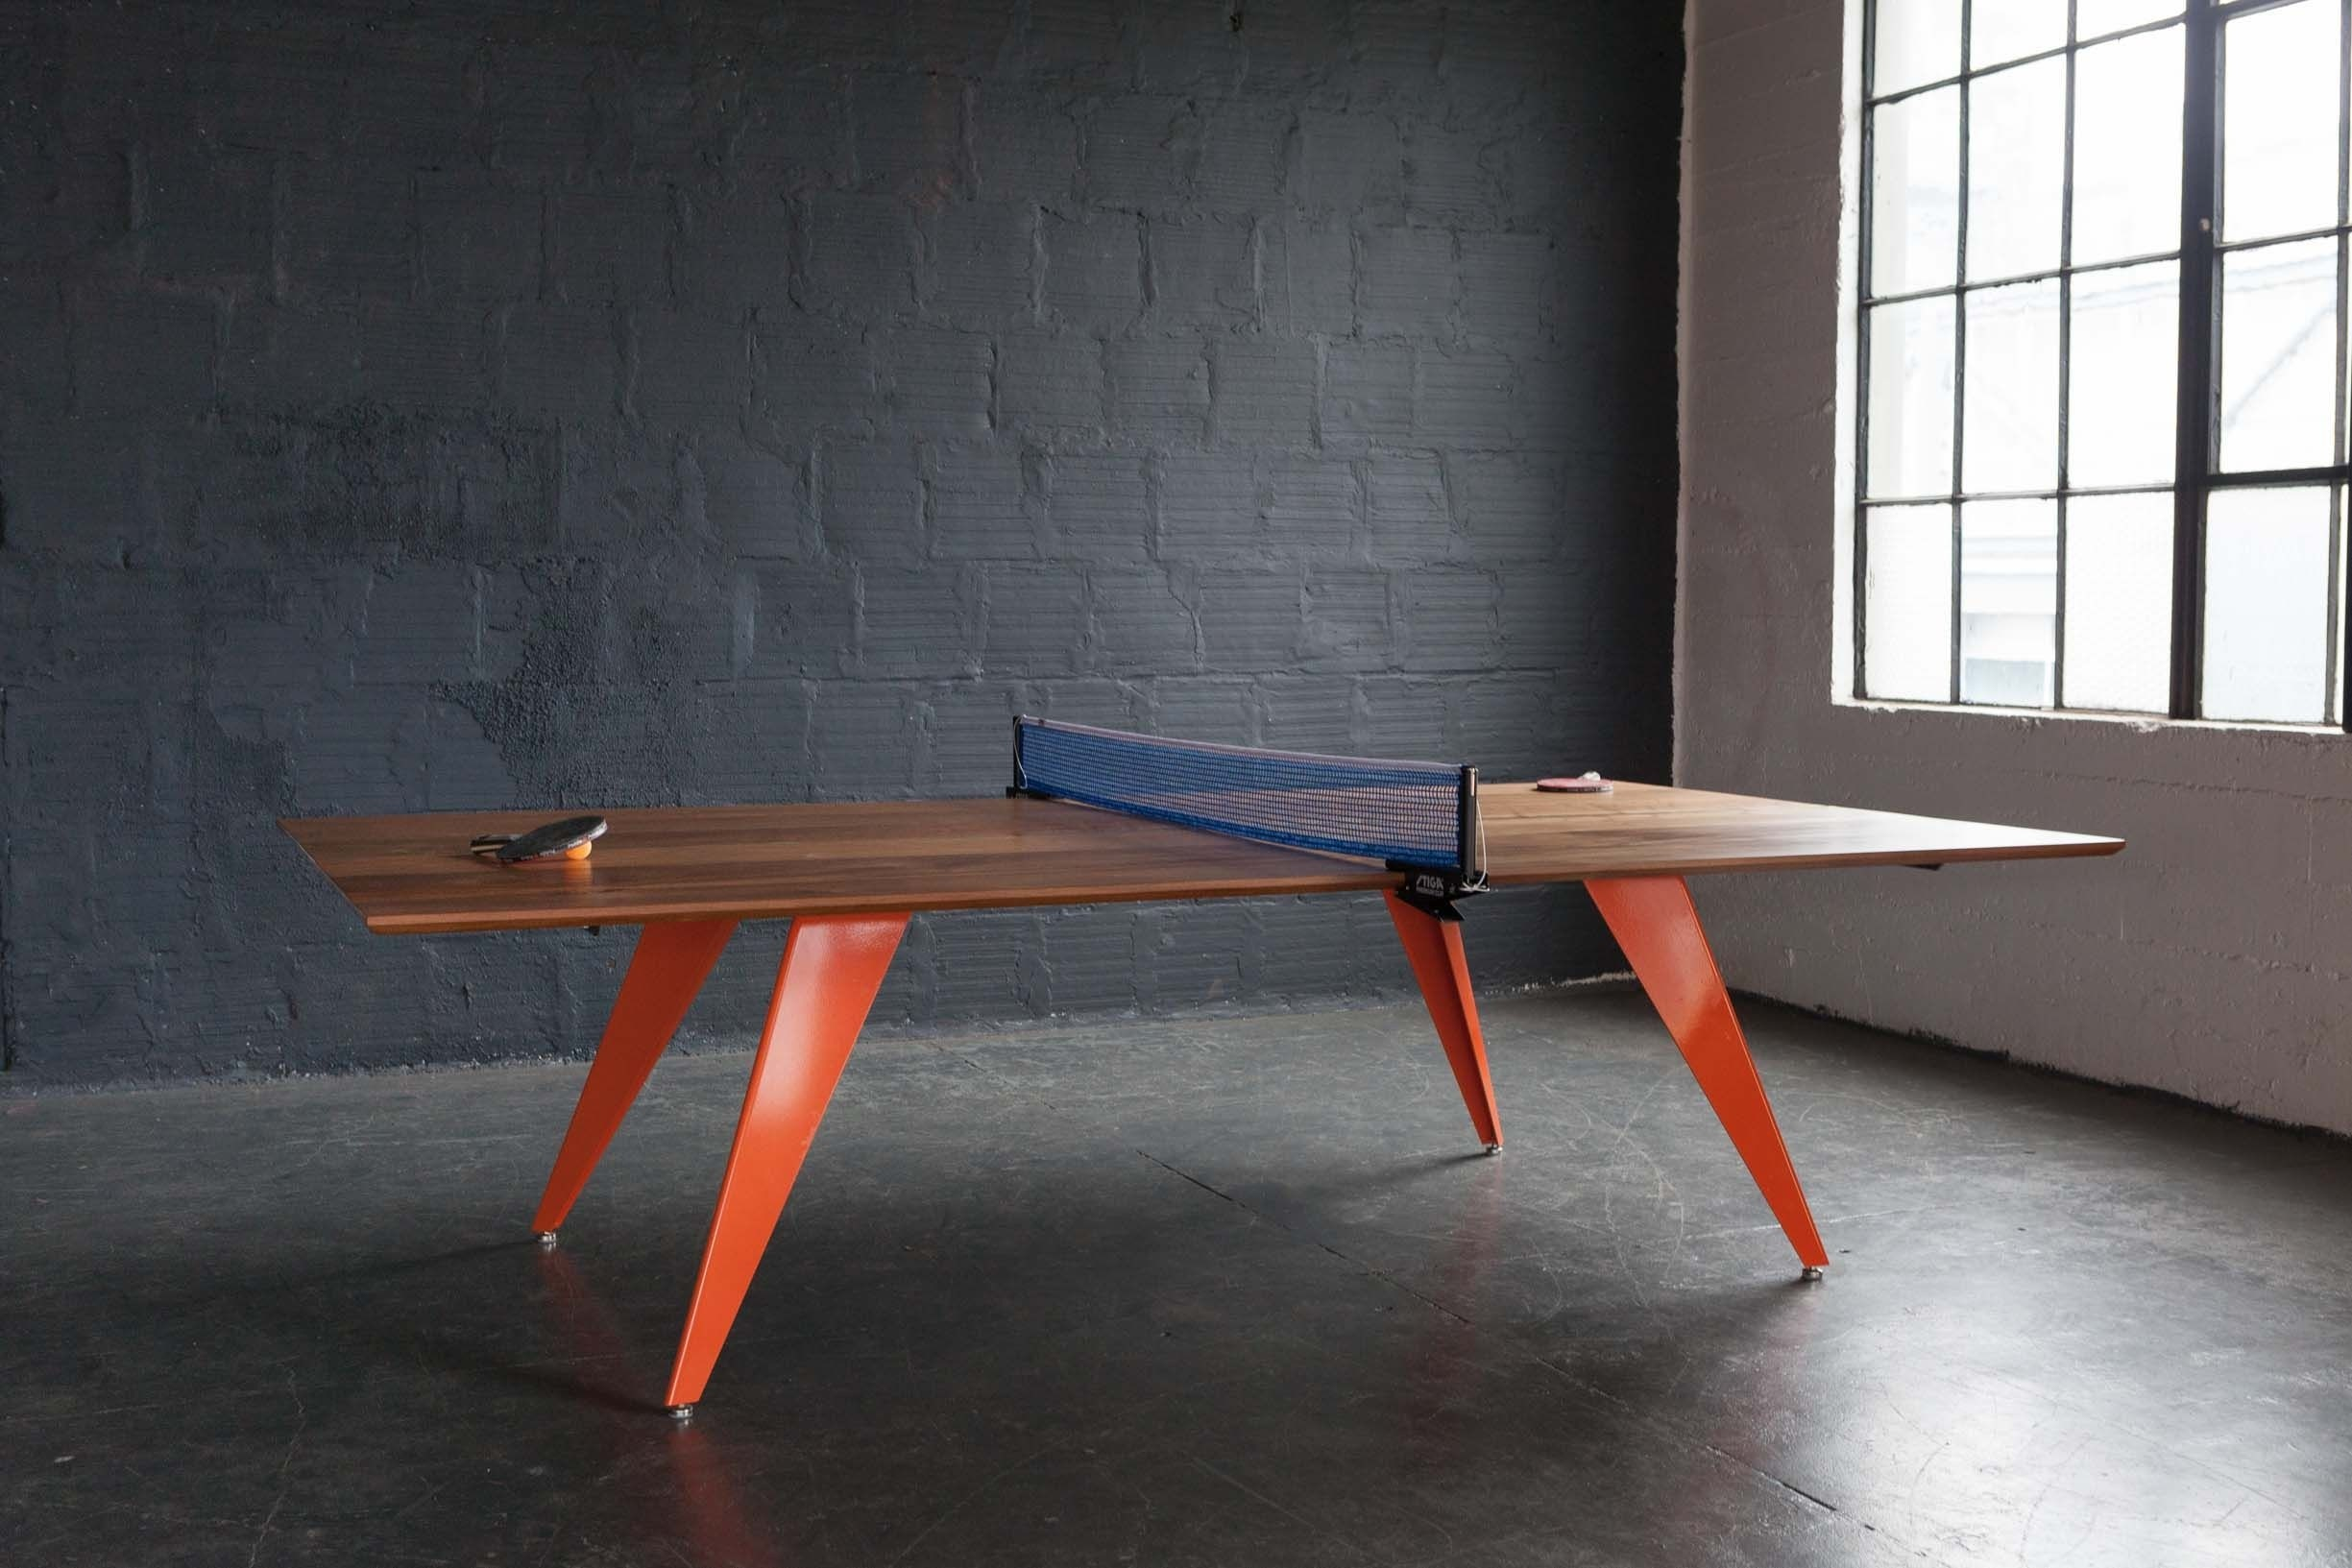 Marvelous Homemade Ping Pong Table